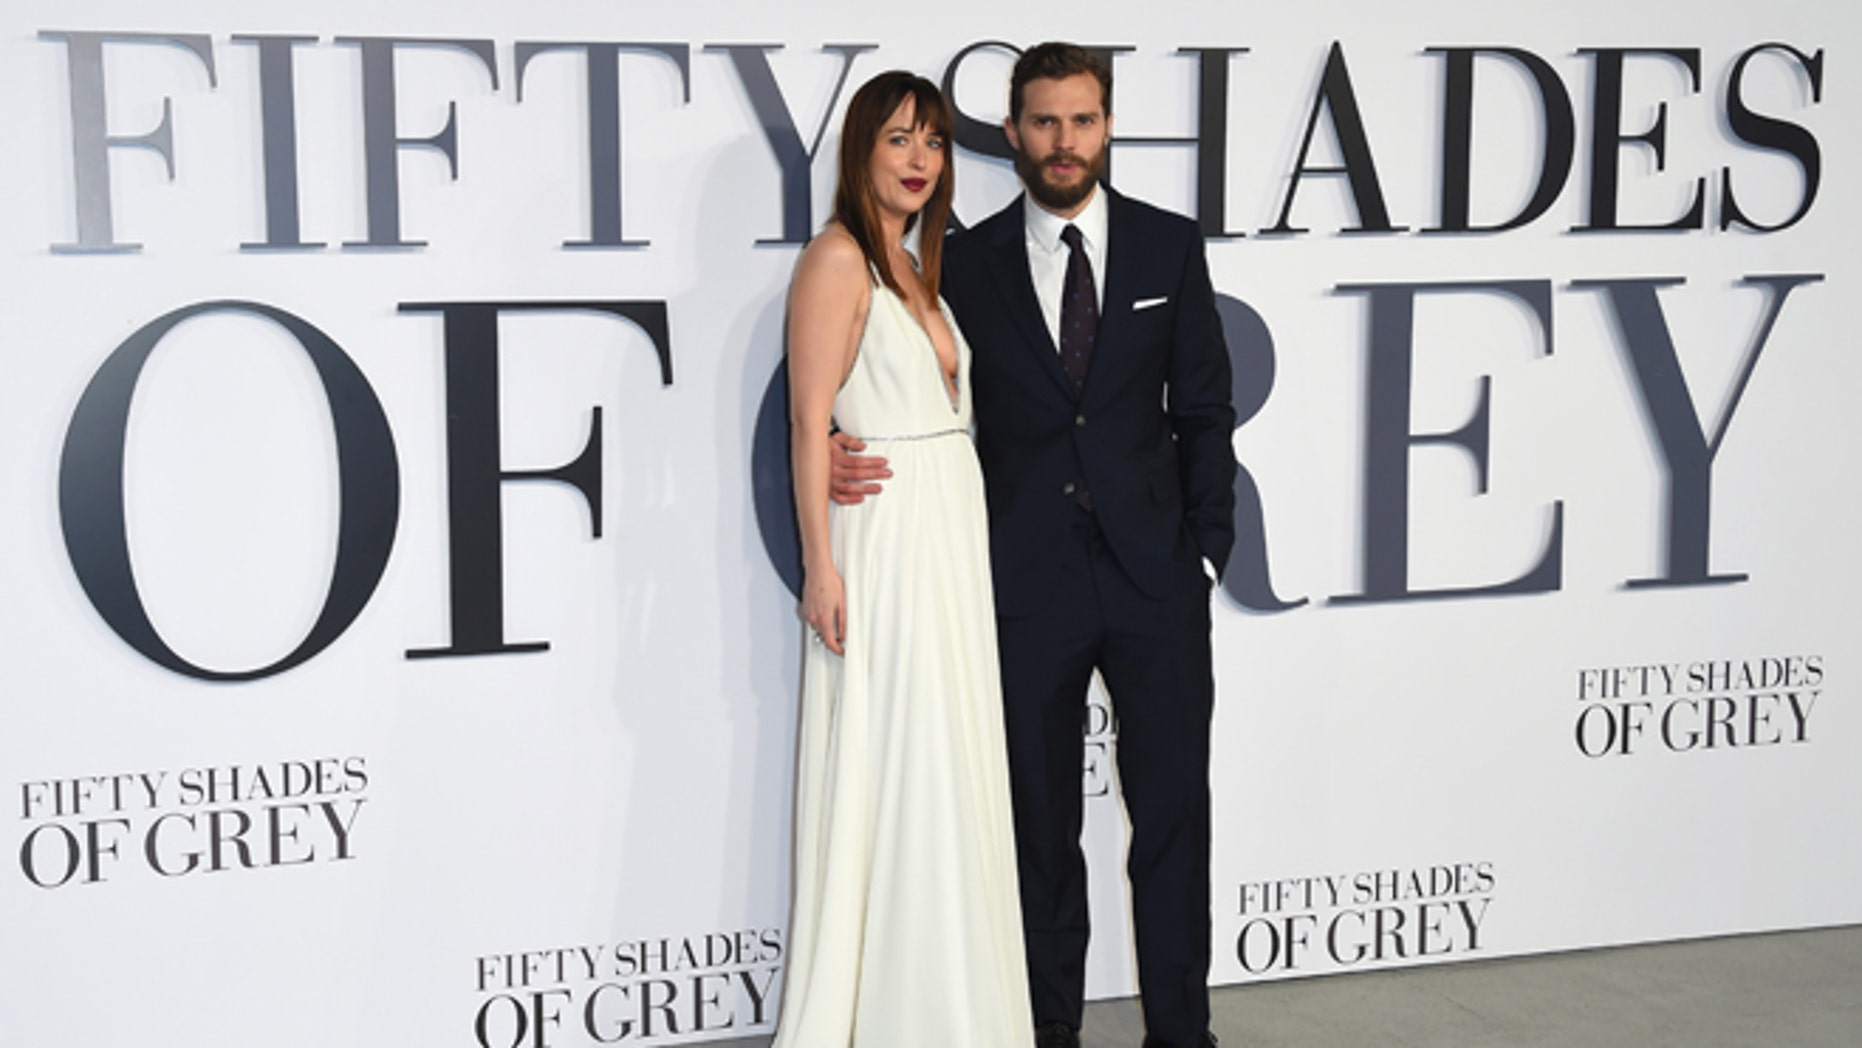 """Feb. 12, 2015. Dakota Johnson and Jamie Dornan pose for photographers at the UK Premiere of """"Fifty Shades of Grey."""""""